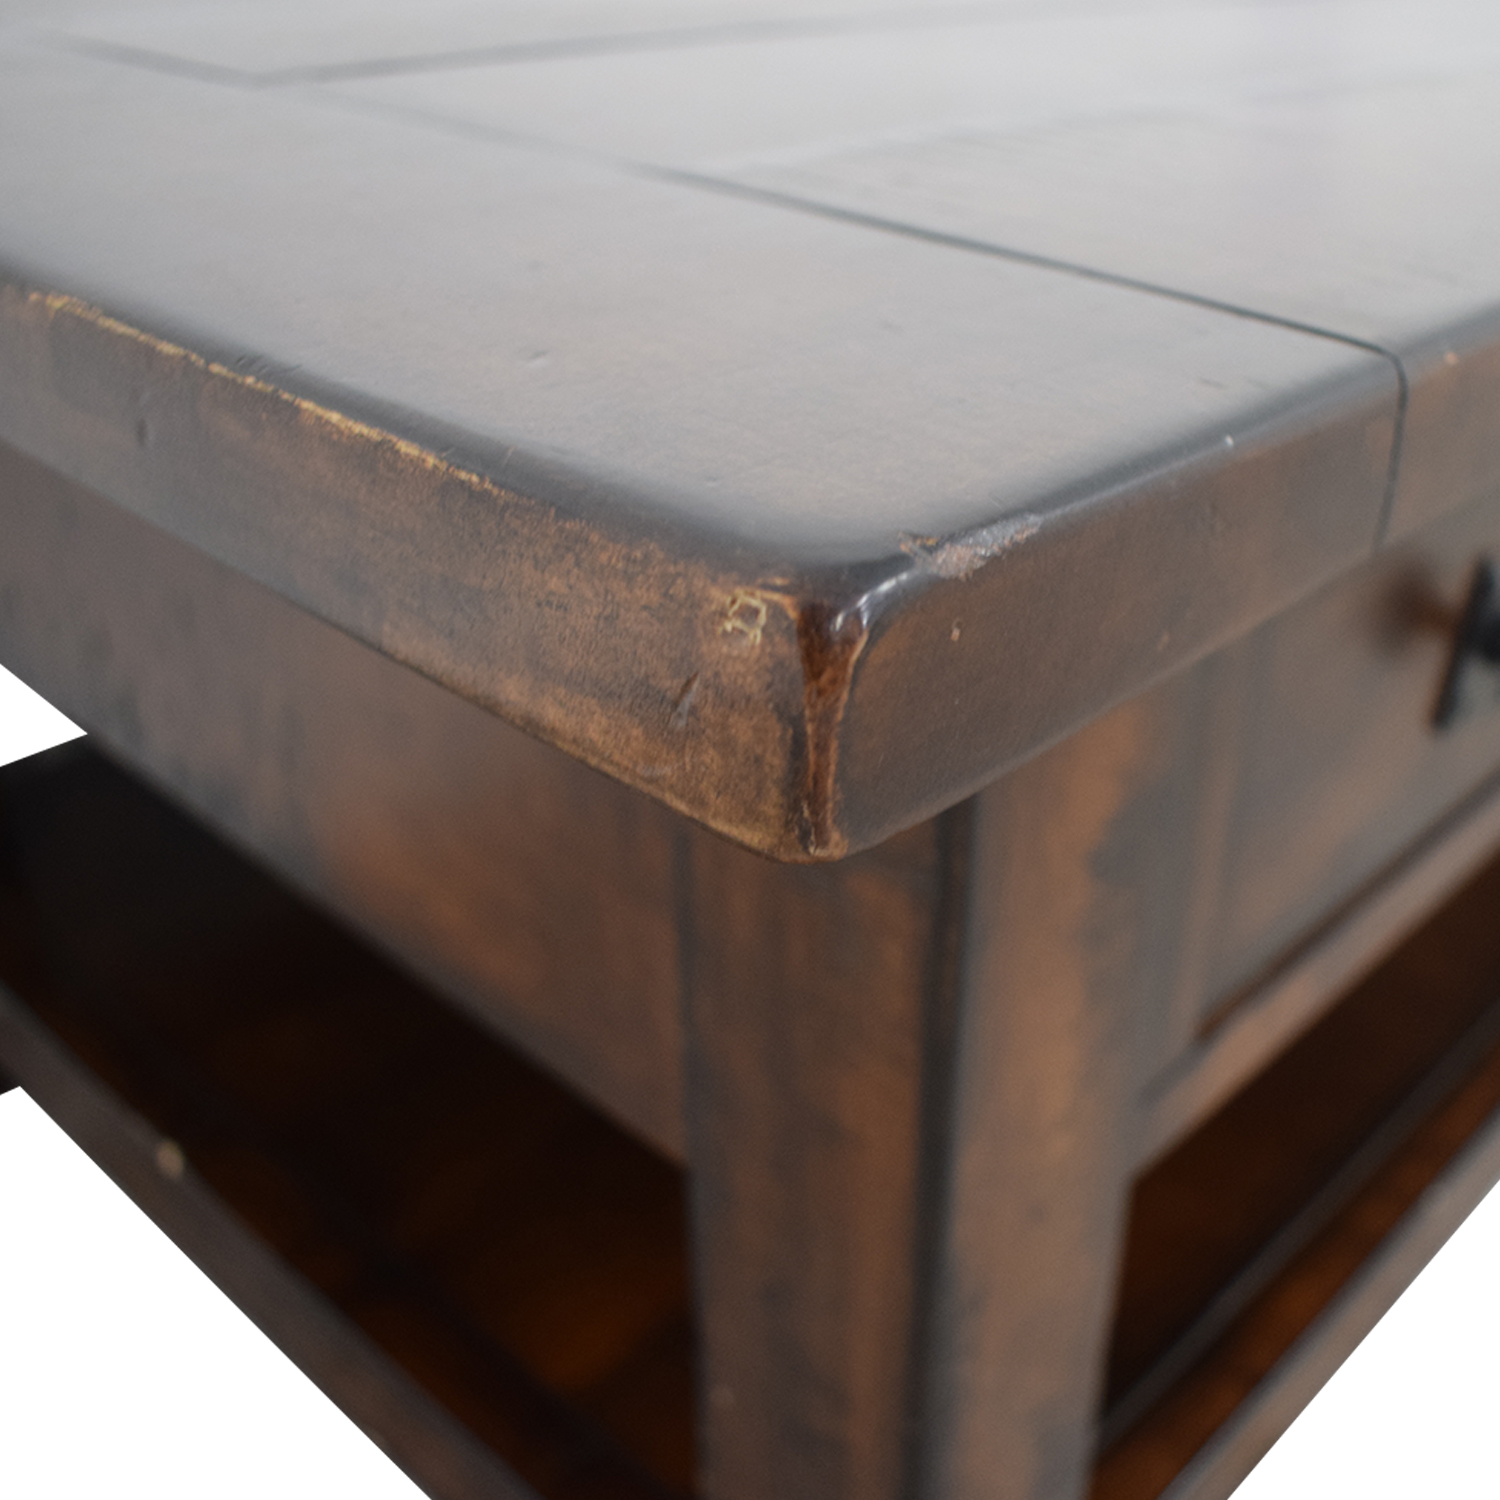 Pottery Barn Pottery Barn Benchwright Two-Drawer Coffee Table second hand